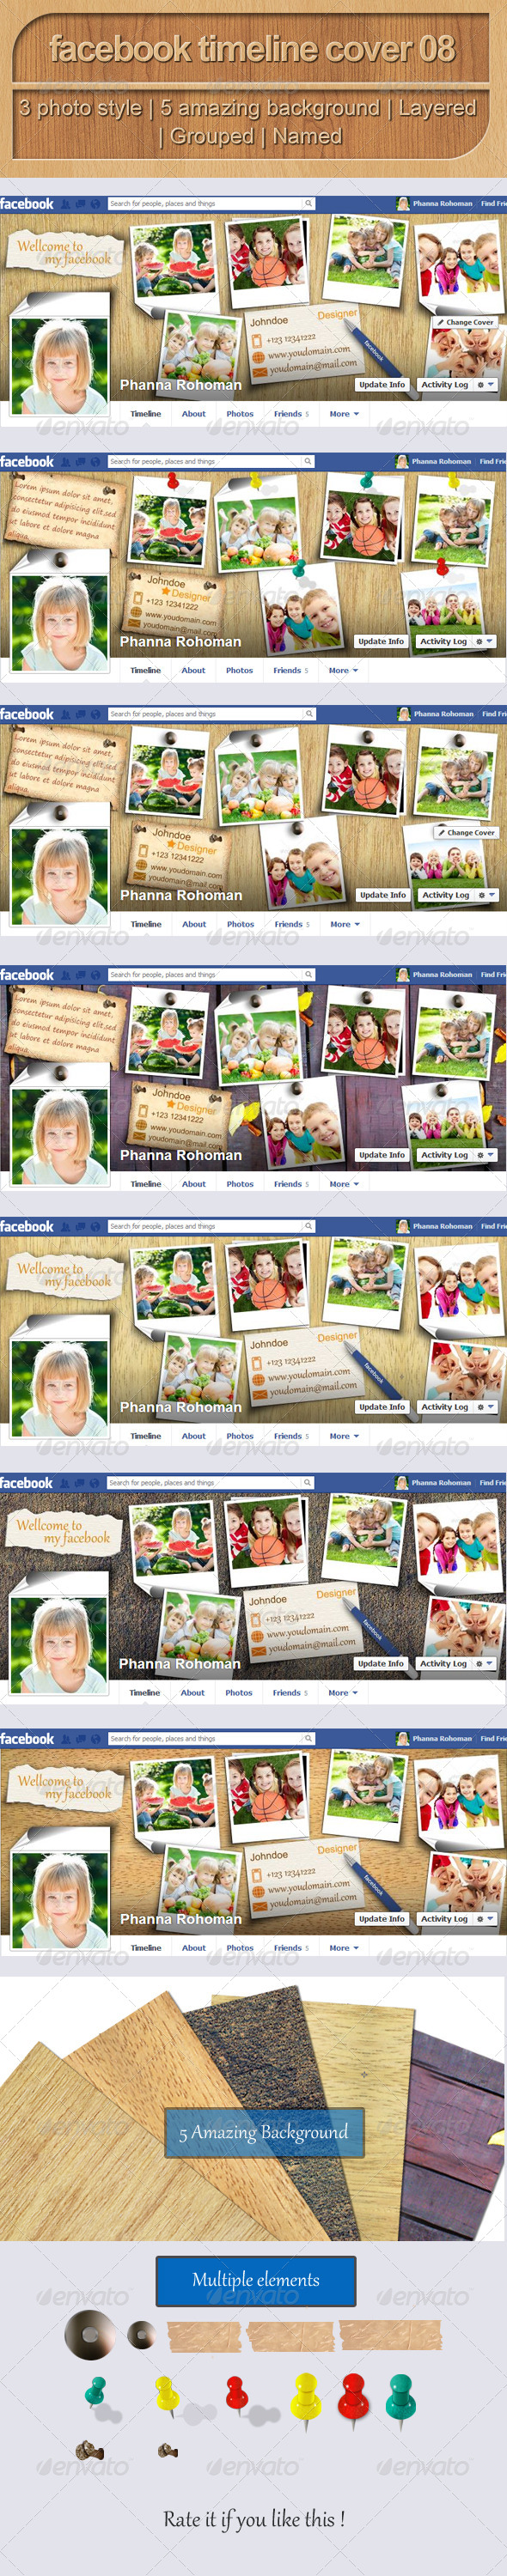 GraphicRiver Facebook Timeline Cover 08 5198442